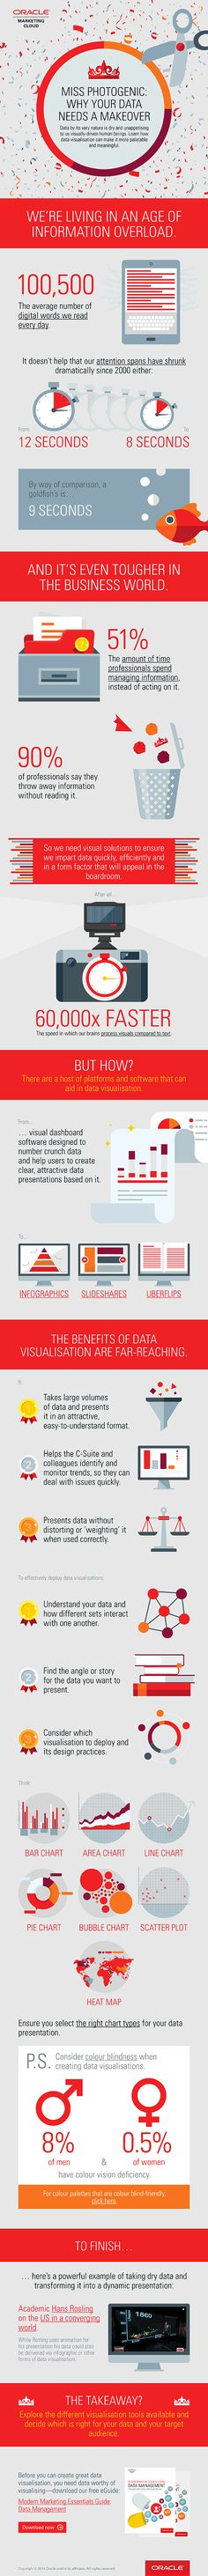 Miss Photogenic: Why your data needs a makeover - #Infographic / ttp://nextlevelinternetmarketing.com